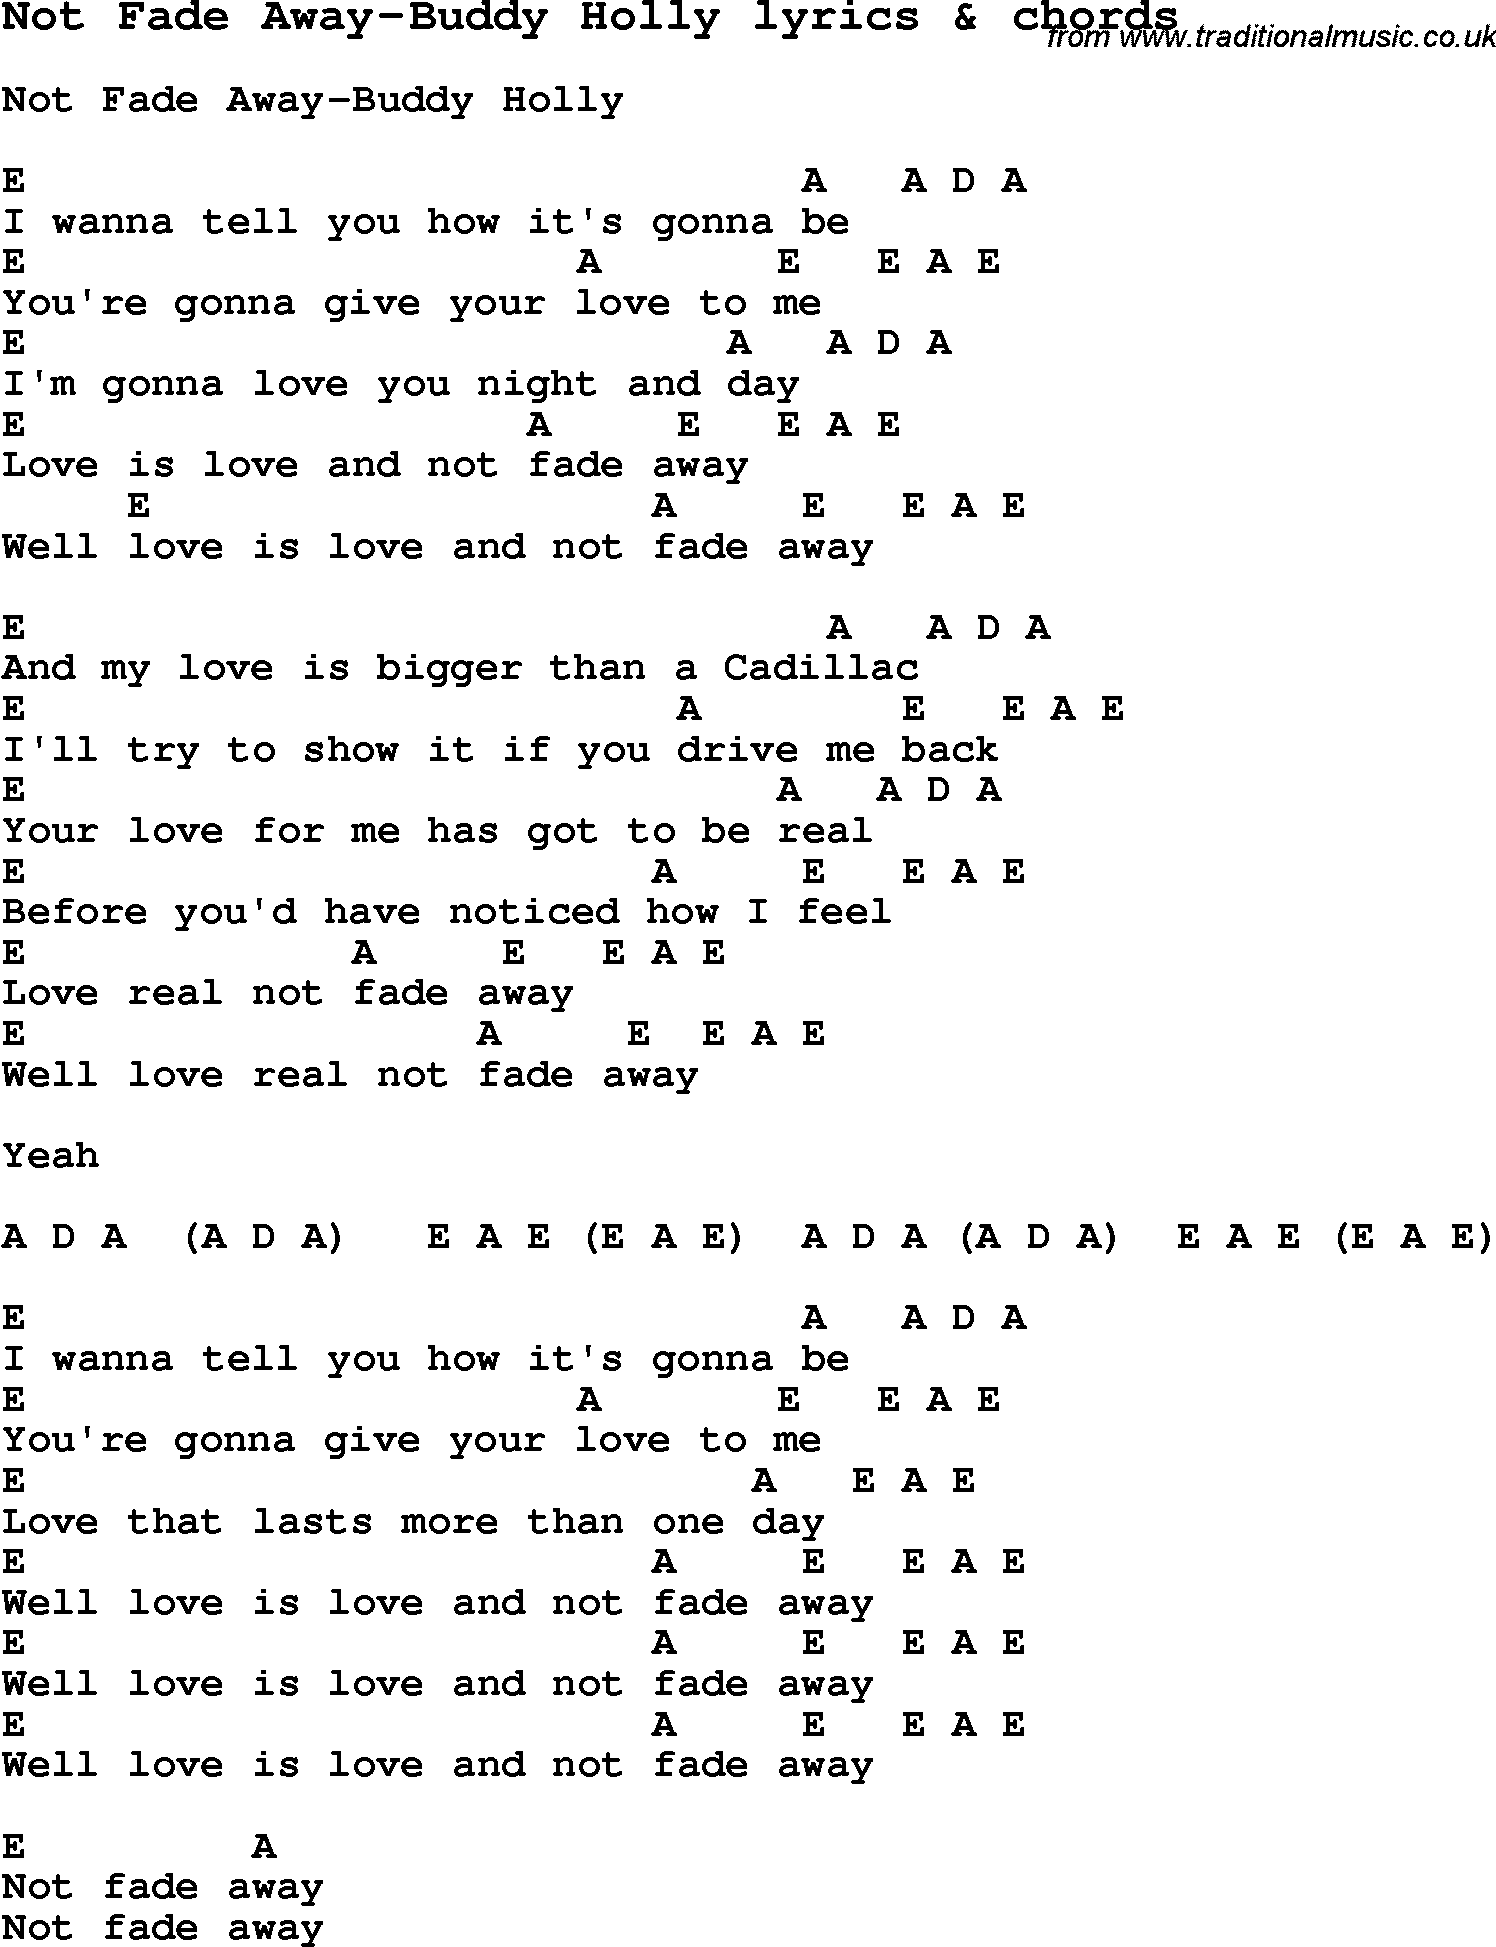 Not fade away buddy holly words pinterest buddy holly love song not fade away buddy holly with chords and lyrics for ukulele guitar banjo and other instruments hexwebz Images